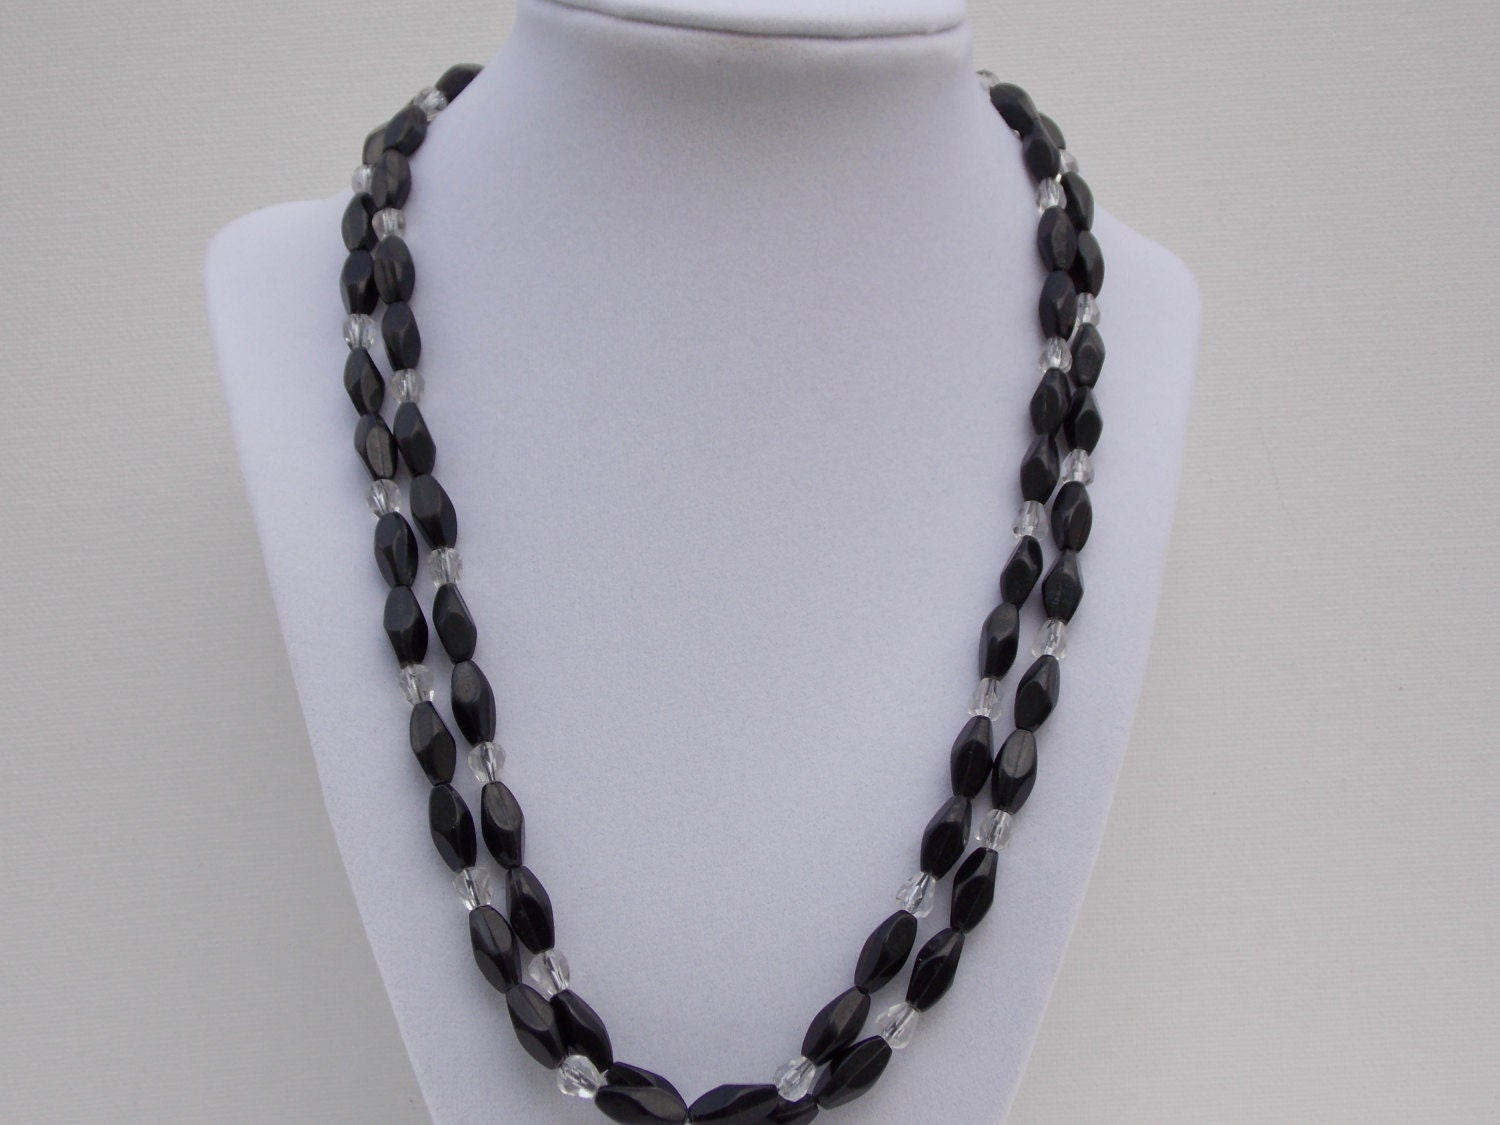 1950s Jewelry Necklace Black Beads Clear Beads 1950s